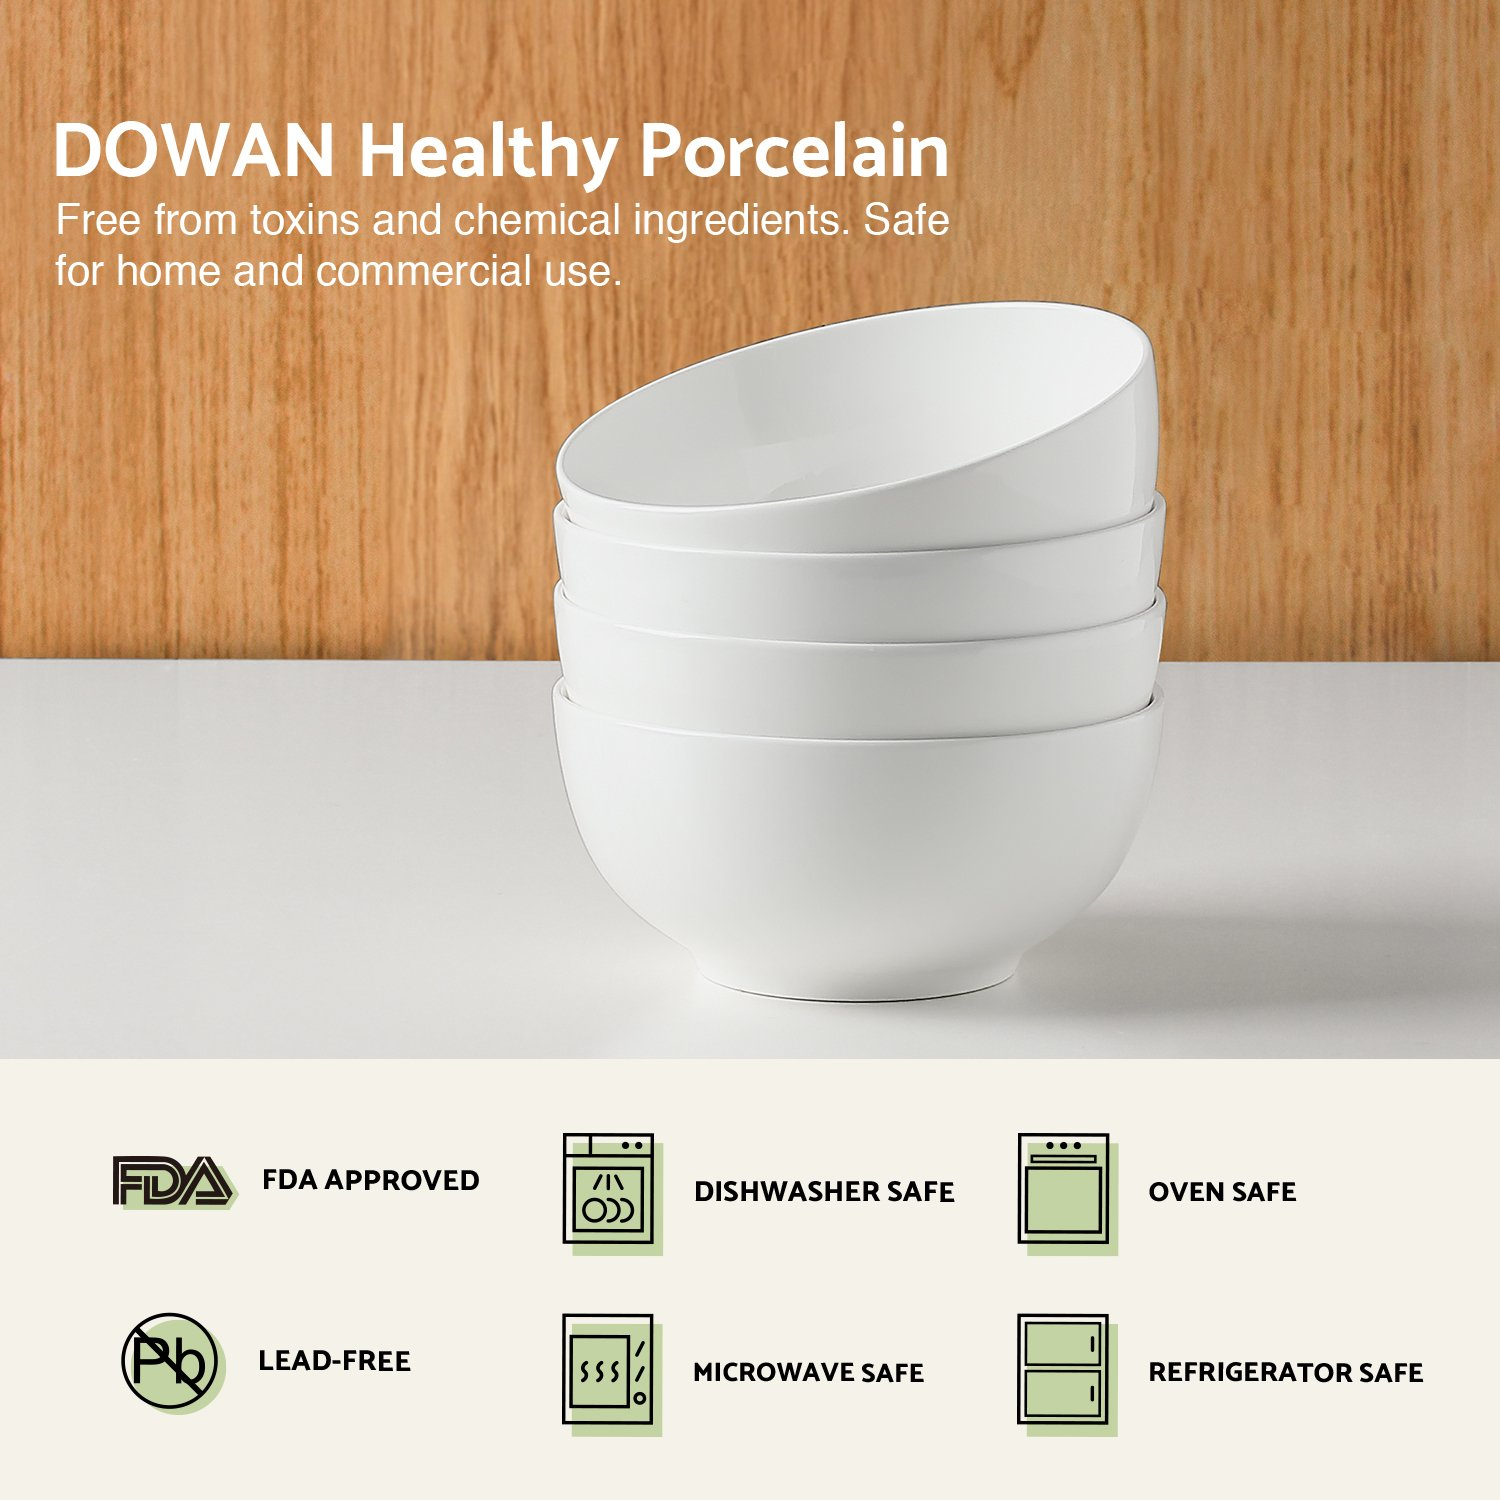 DOWAN 22oz Porcelain Soup/Cereal Bowls - 4 Packs, White by DOWAN (Image #3)